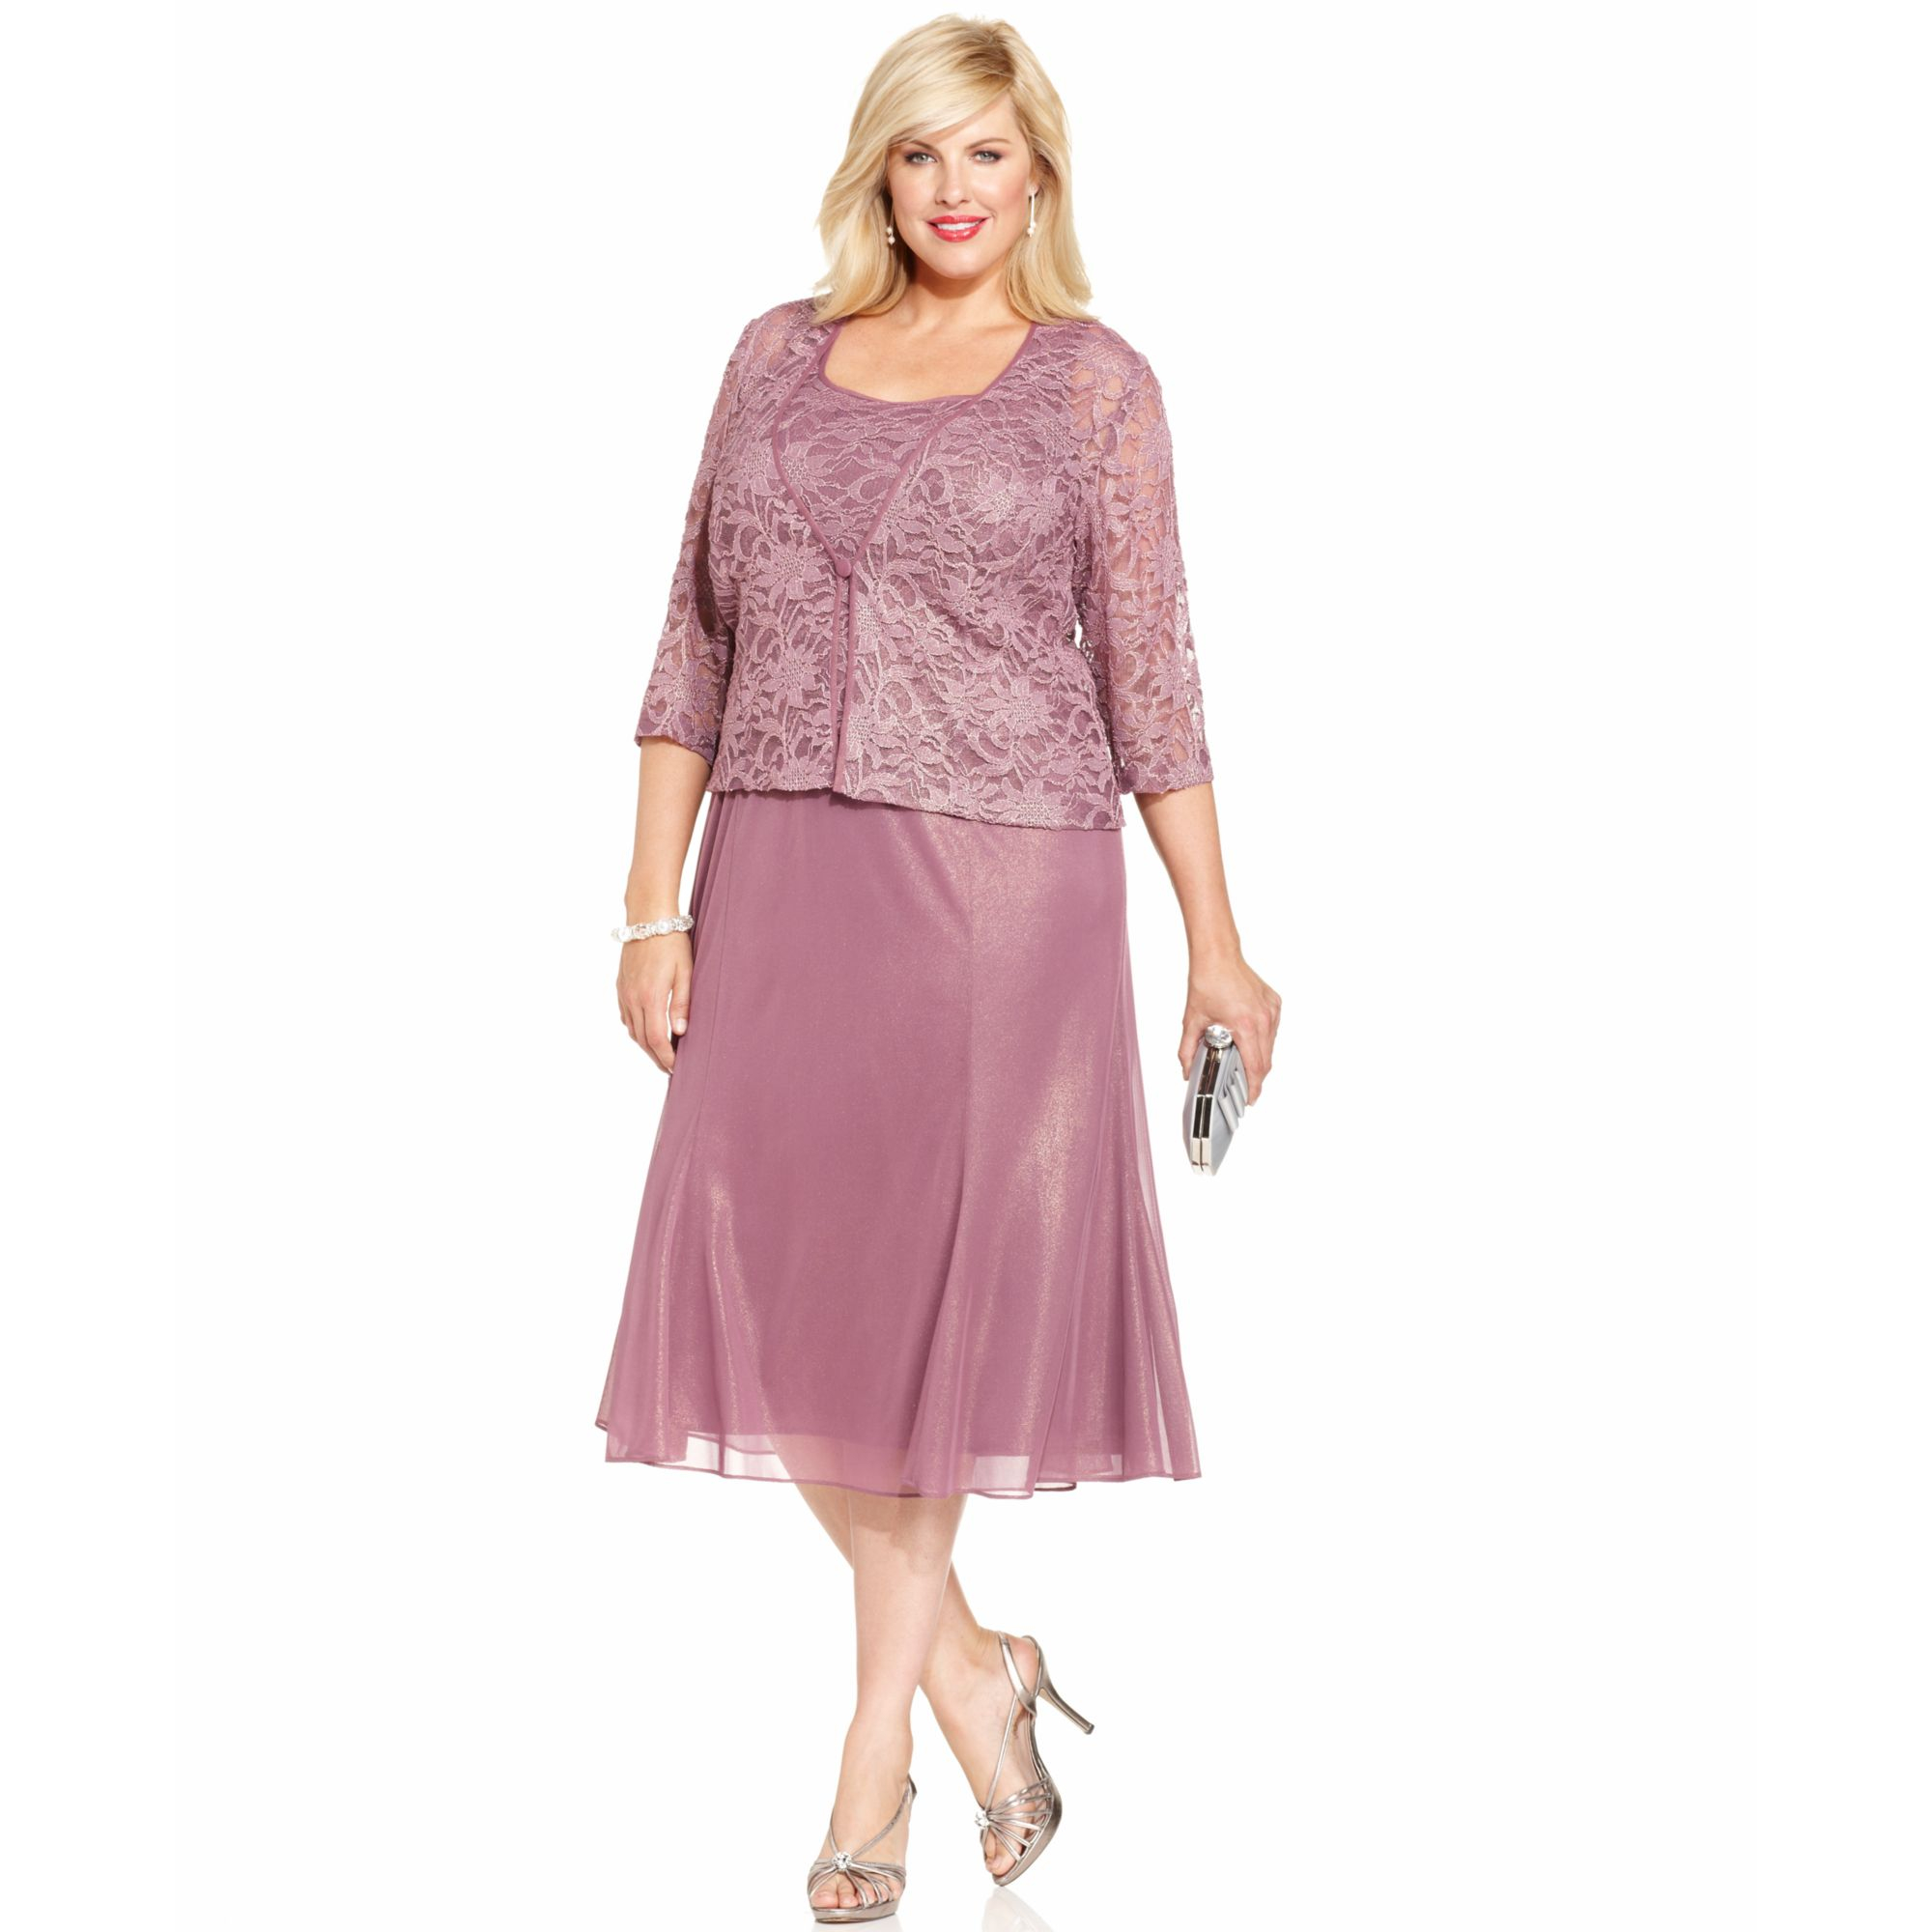 Lyst - Alex Evenings Plus Size Shimmer Lace Dress and Jacket in Pink